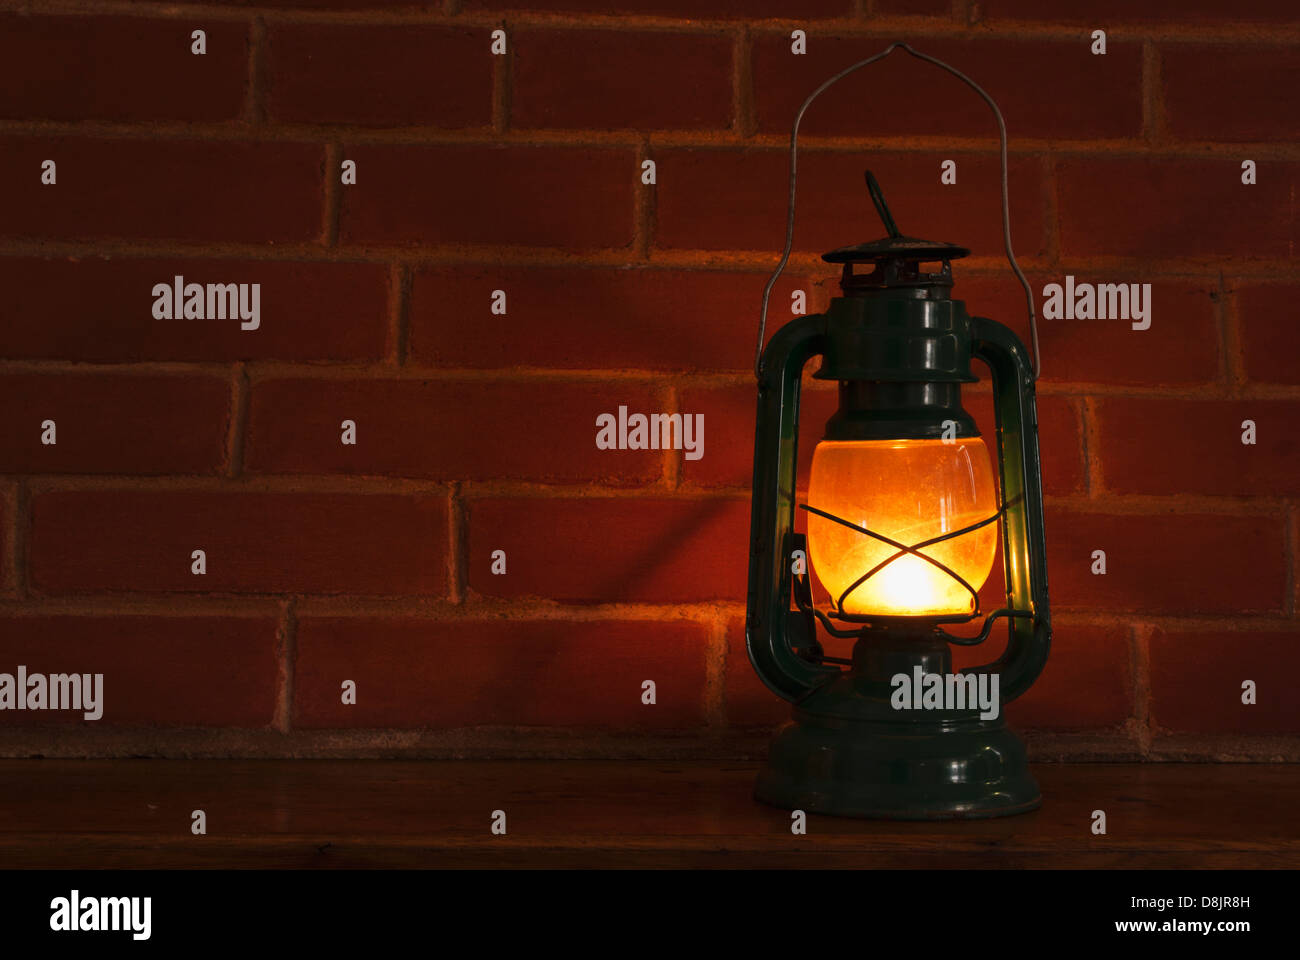 An oil lamp lantern style lighting in front of a brickwall background. - Stock Image